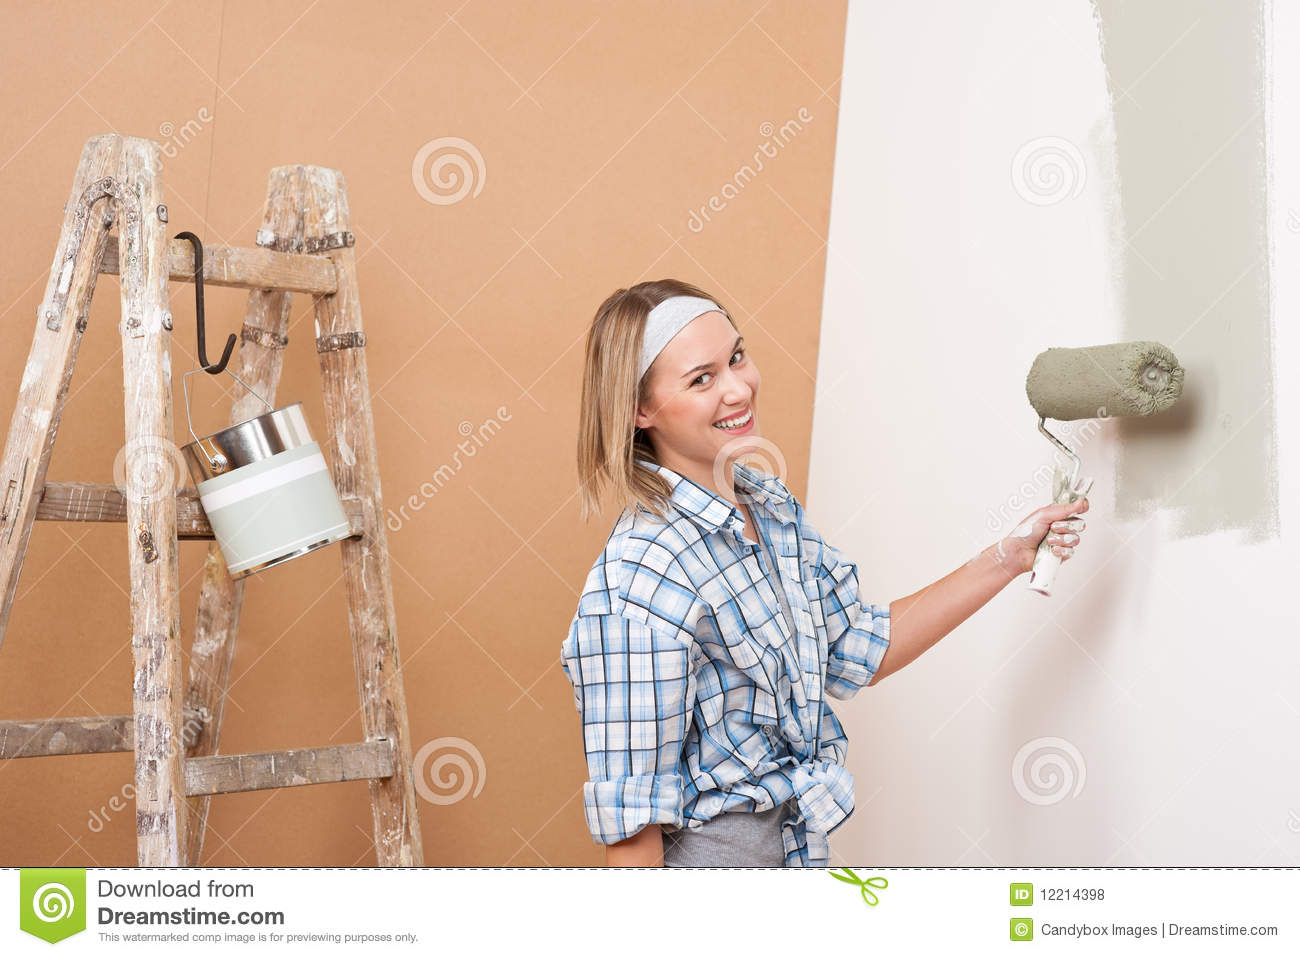 home improvement painting: